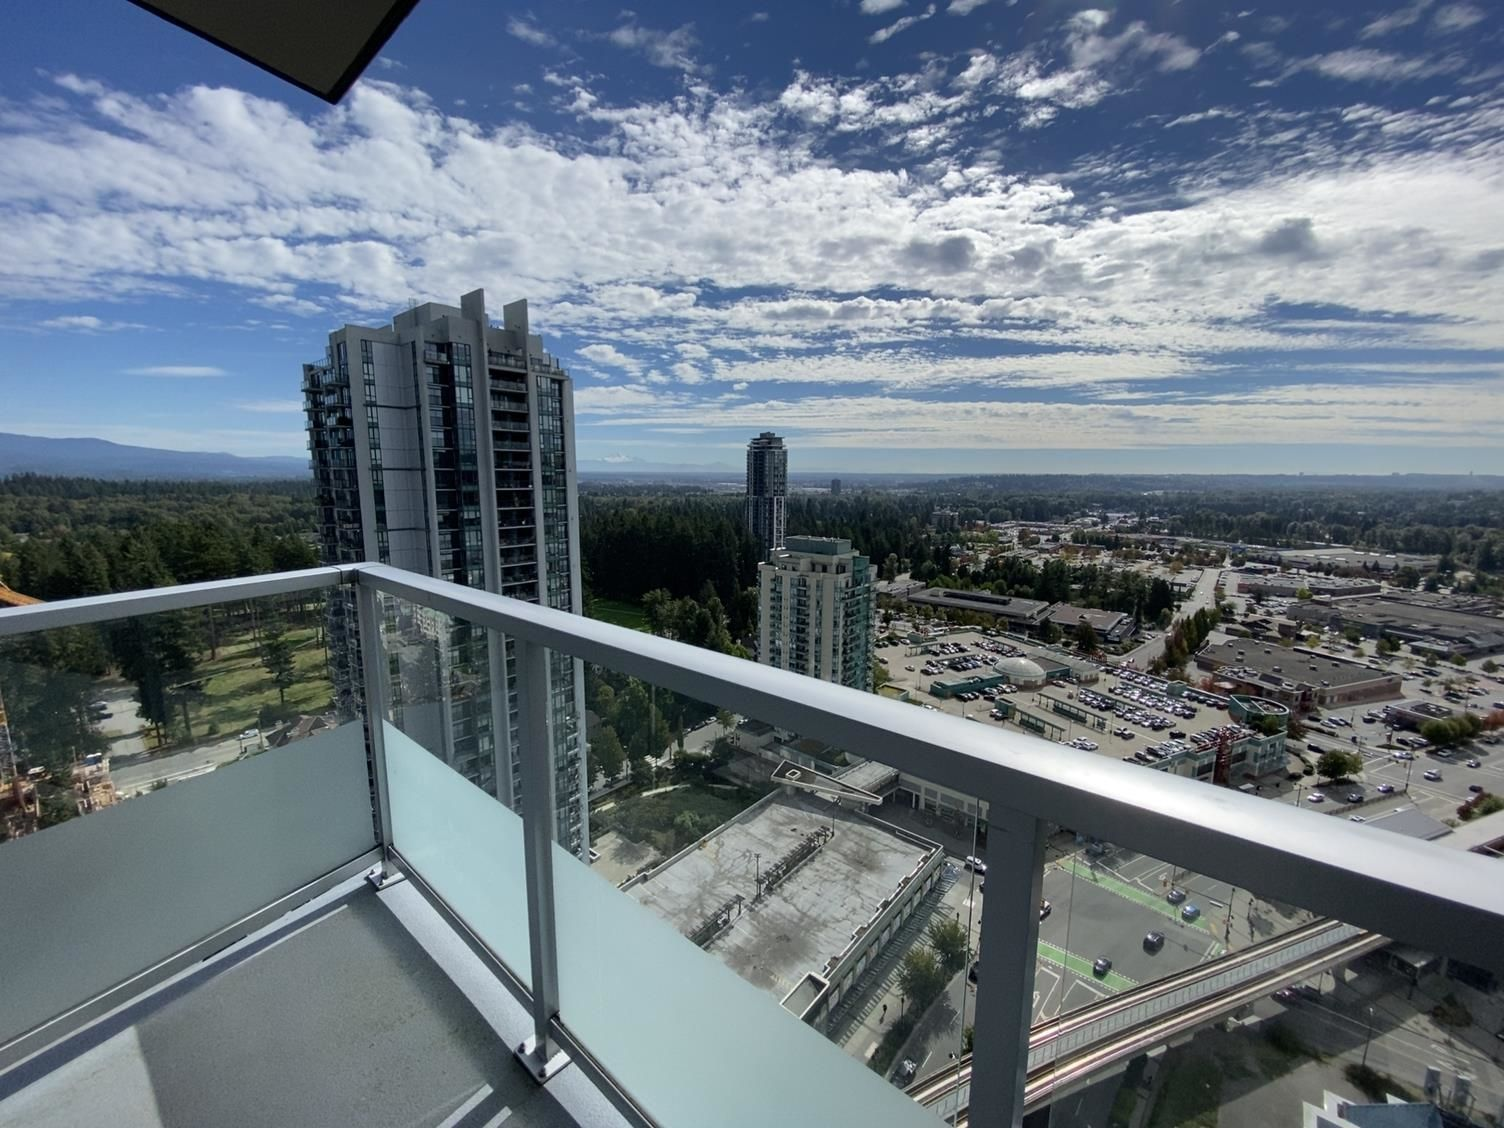 """Main Photo: 3309 1188 PINETREE Way in Coquitlam: North Coquitlam Condo for sale in """"M3"""" : MLS®# R2620854"""